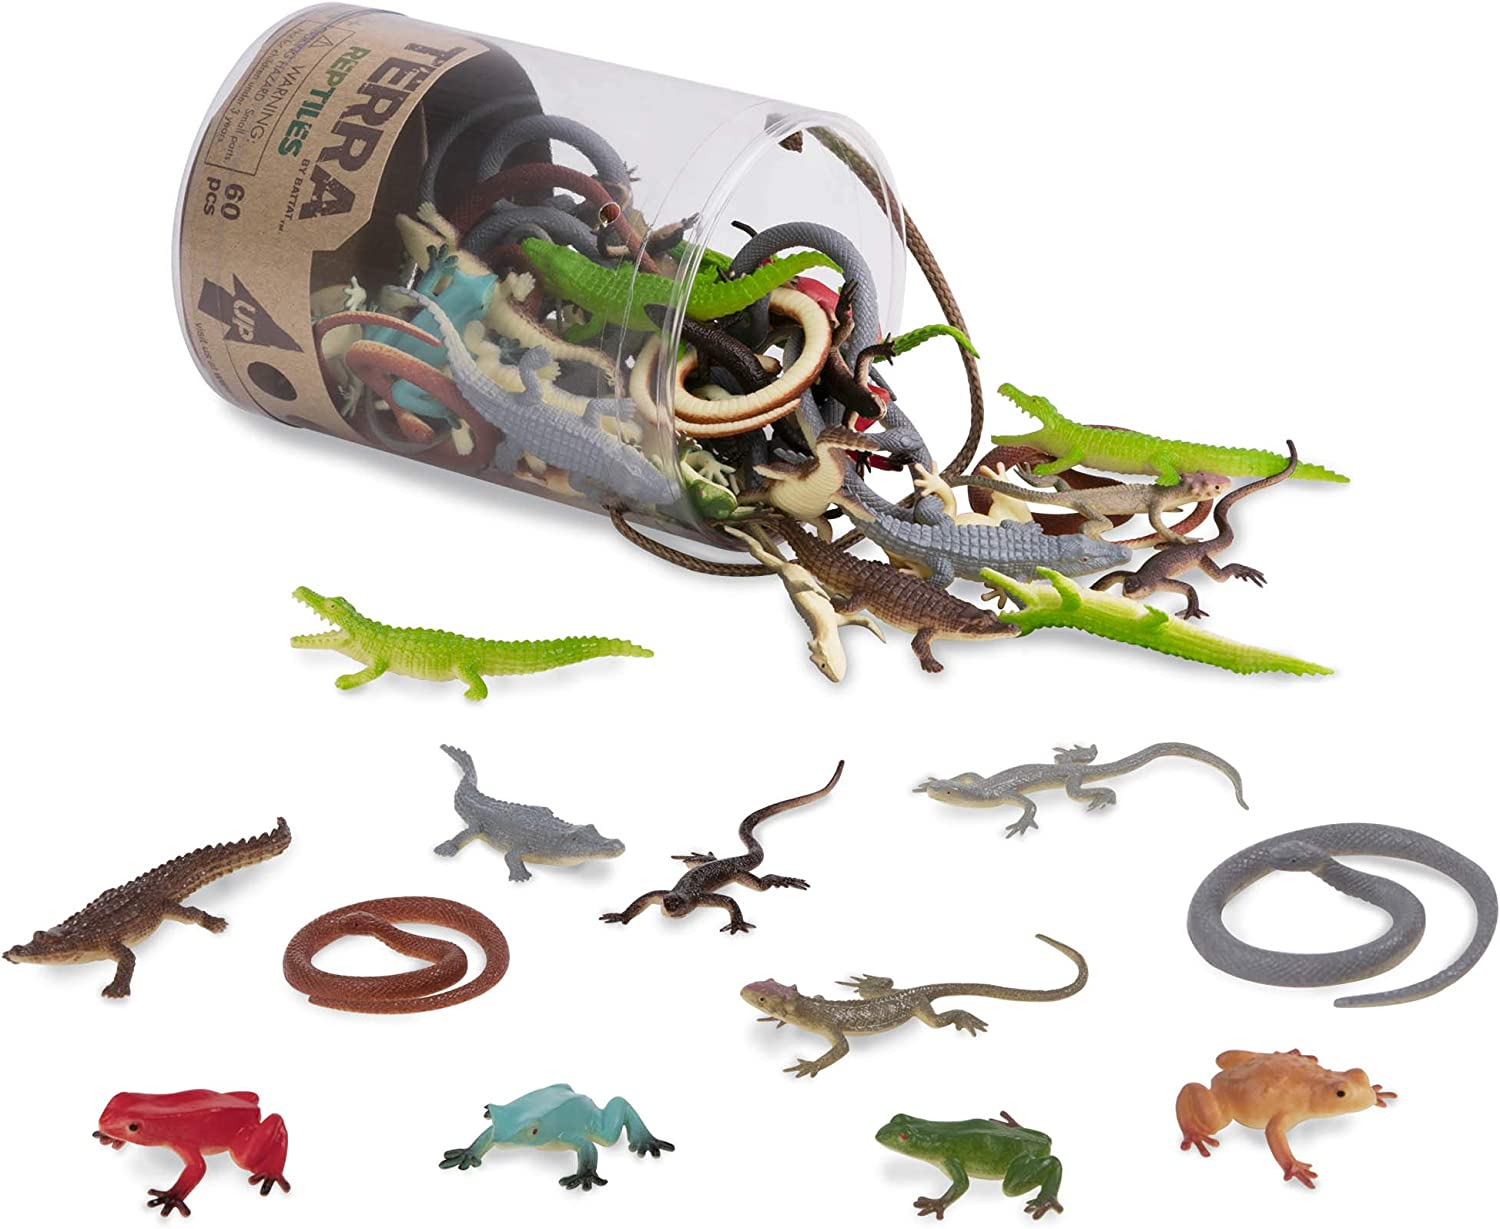 Terra by Battat – Reptiles In Tube – Assorted Reptile Animal Toys & Cake Toppers For Kids 3+ (60 Pc)